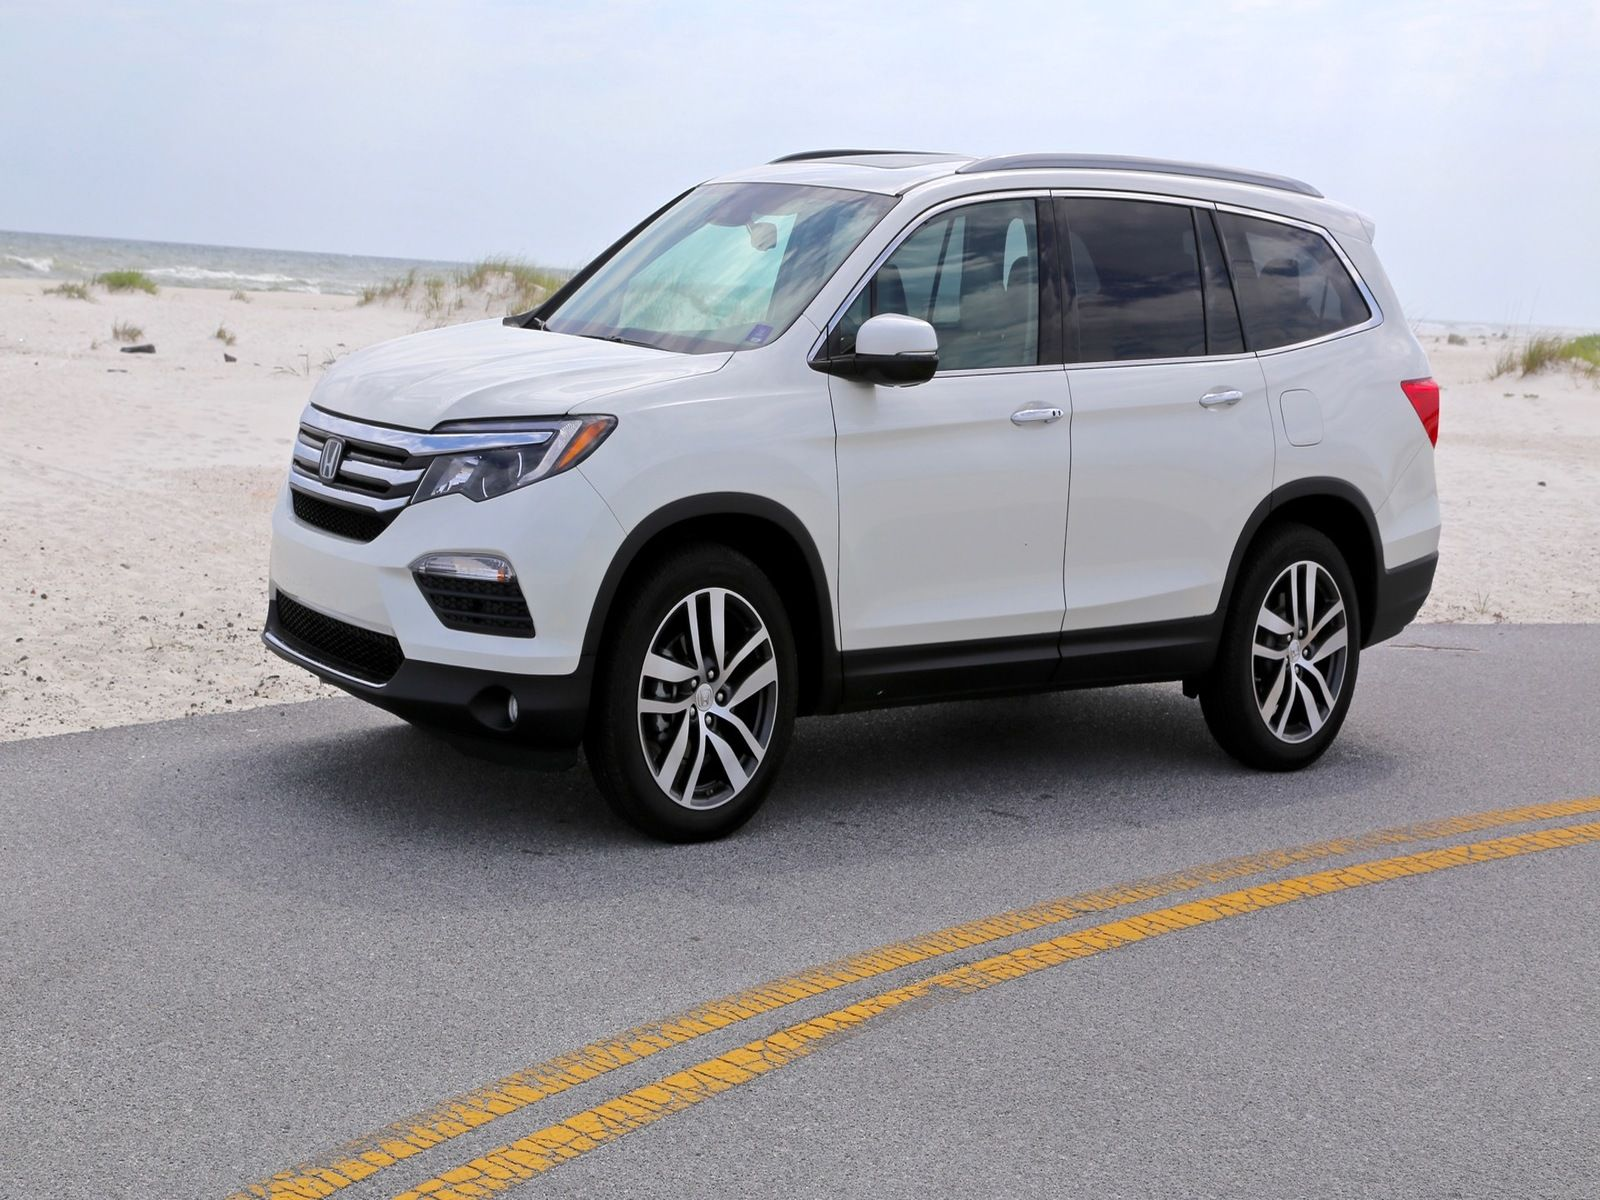 2017 Honda Pilot Touring Specs Check more at https://www ...